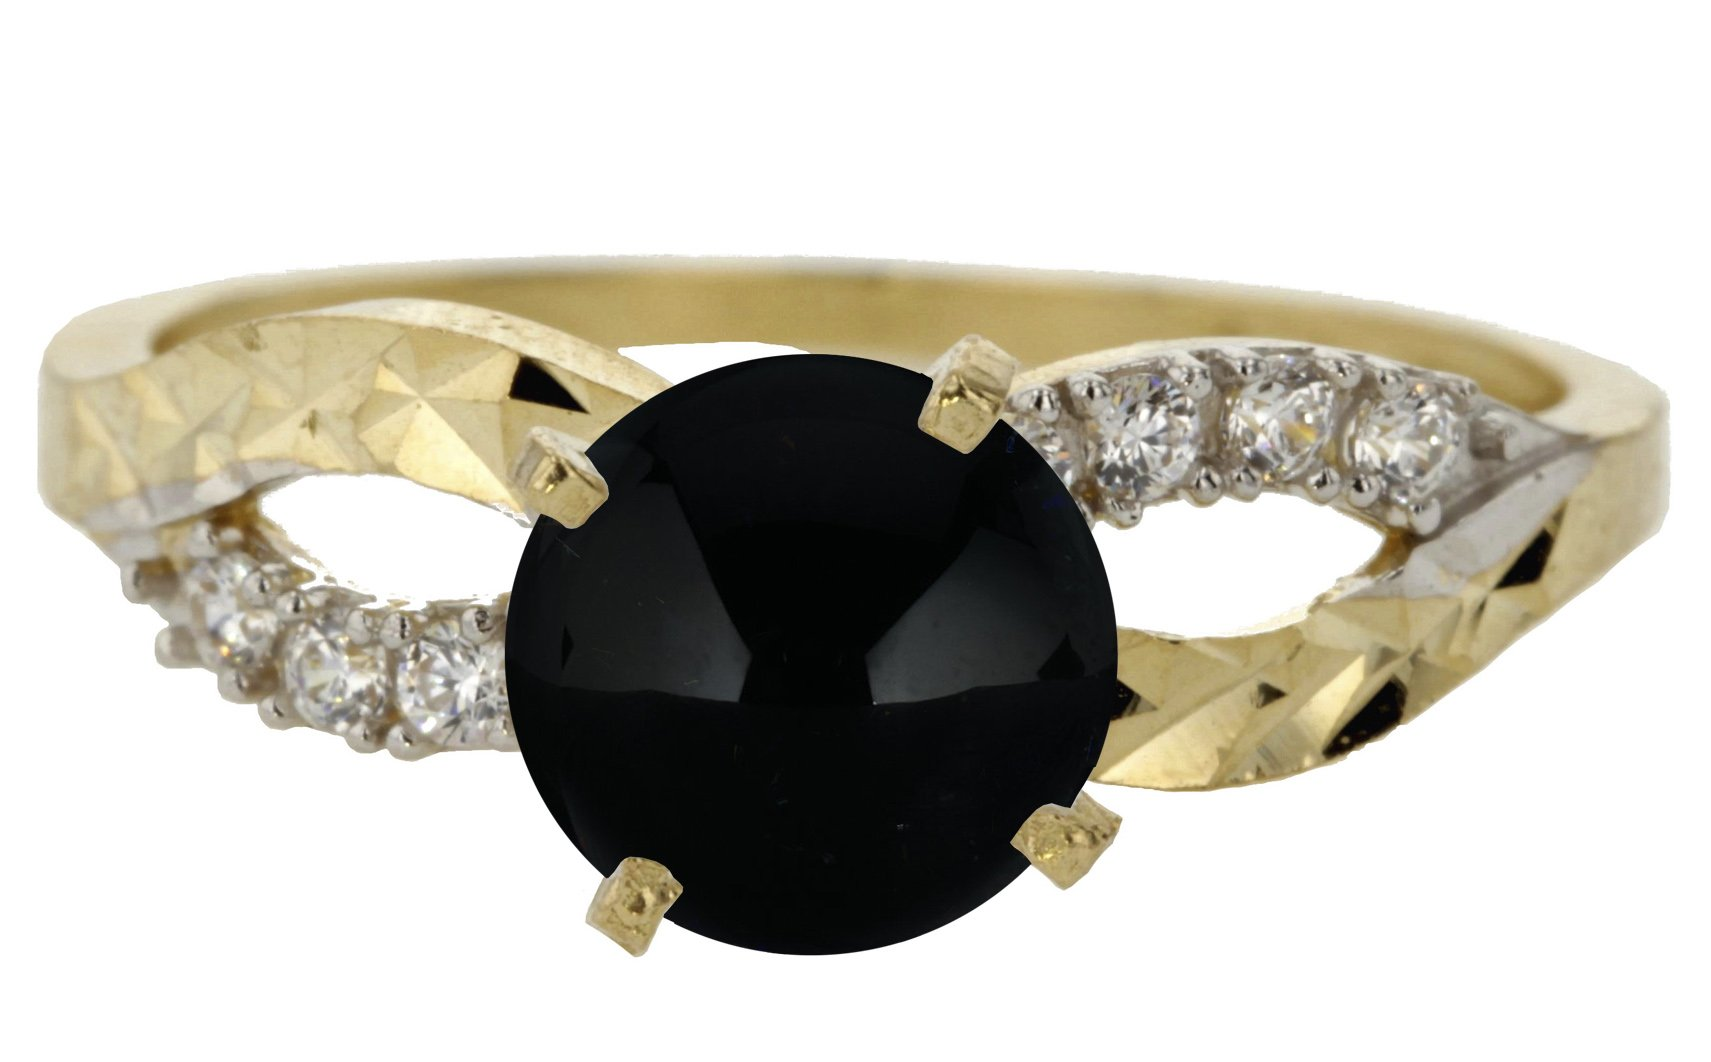 10k Yellow Gold Cabochon Natural Genuine Black Onyx Round Solitaire Infinity Knot Engagement Ring Size 9